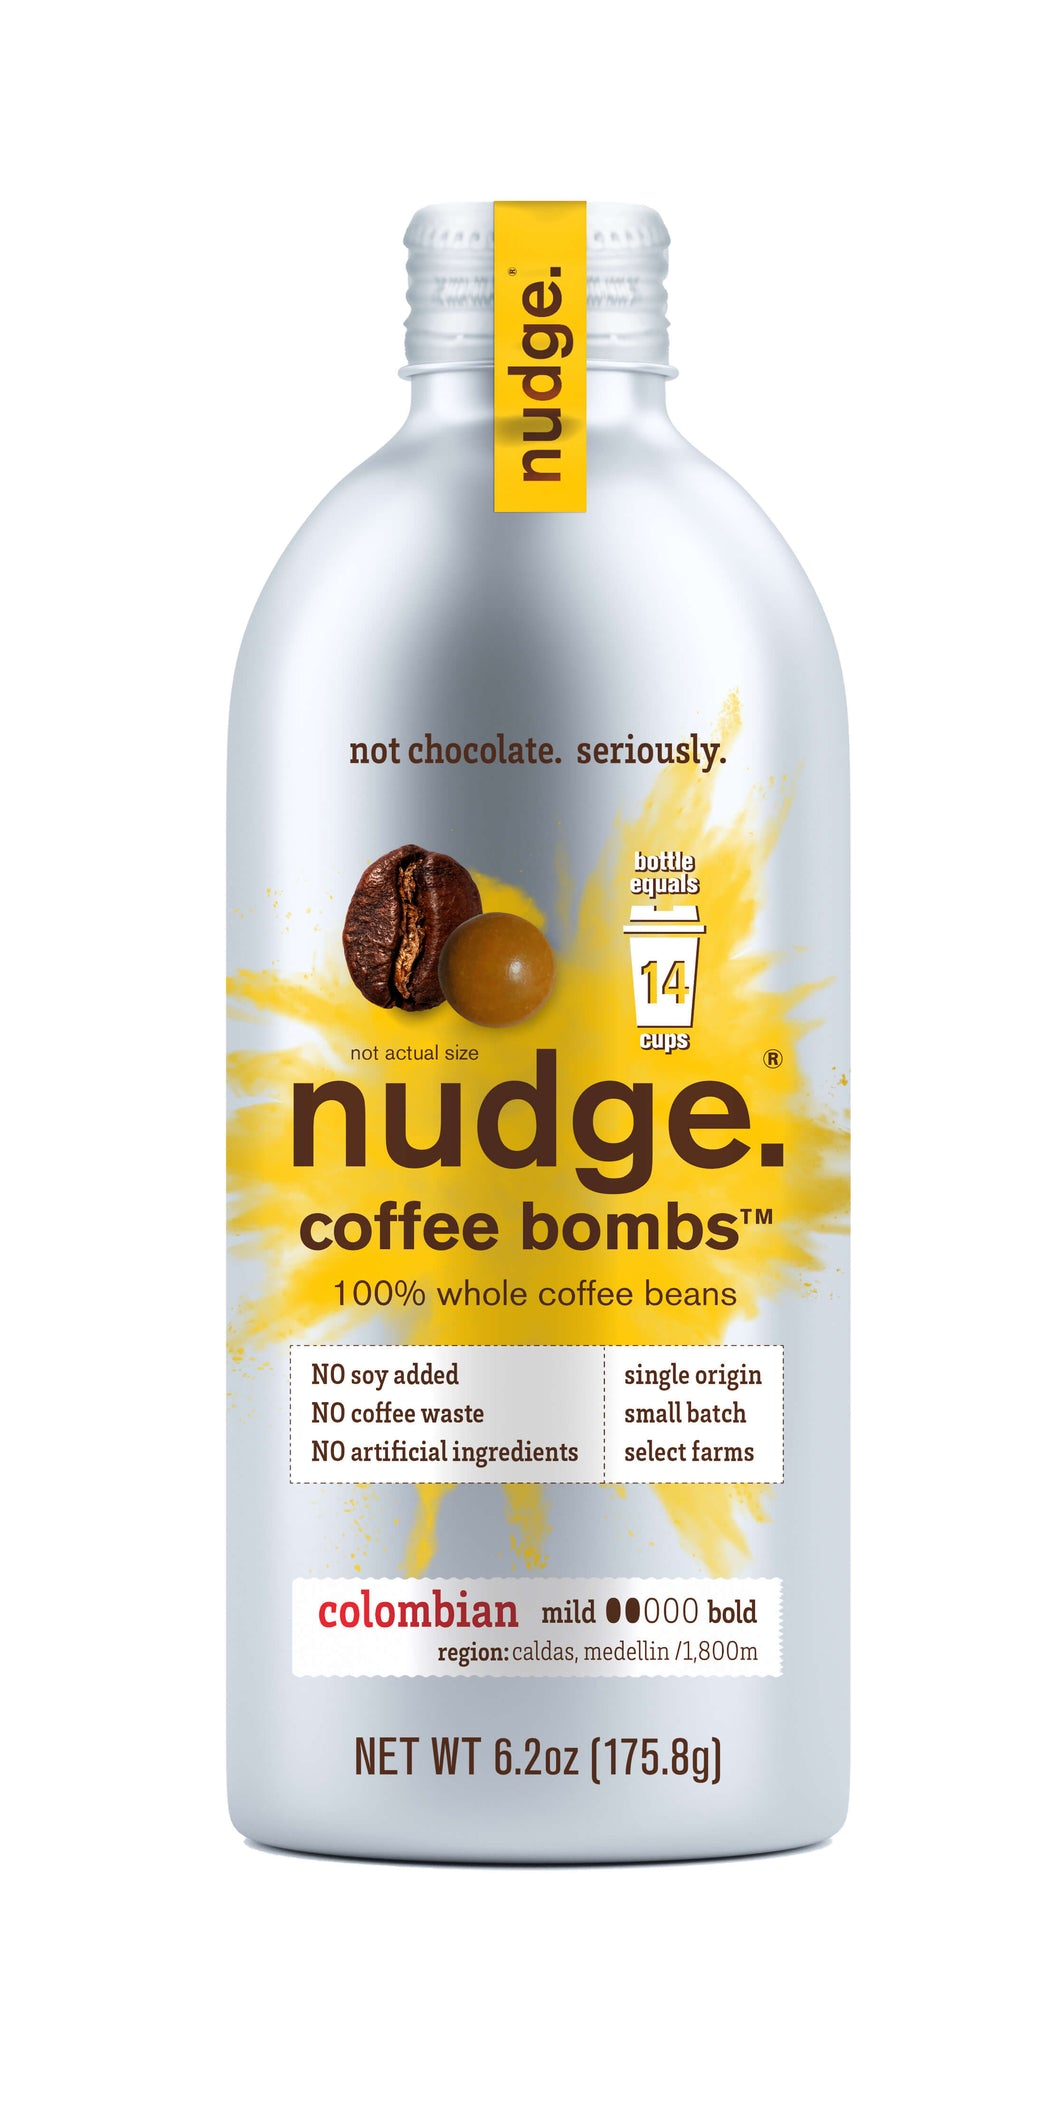 colombian coffee bombs™ bottles